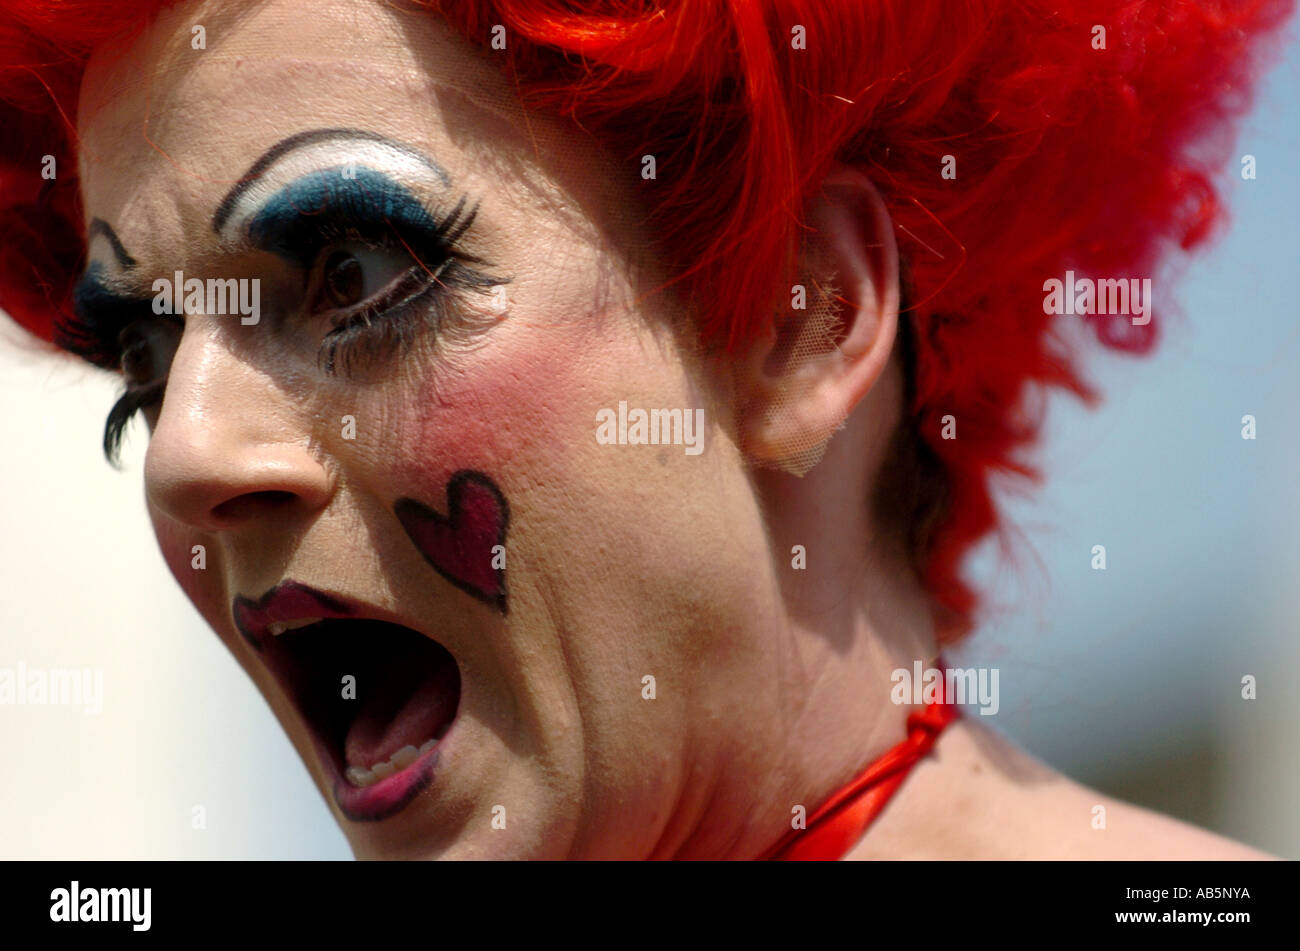 BHZ bhz A performer makes a face during the Streets of Brighton which is part of Brighton Festival UK - Stock Image